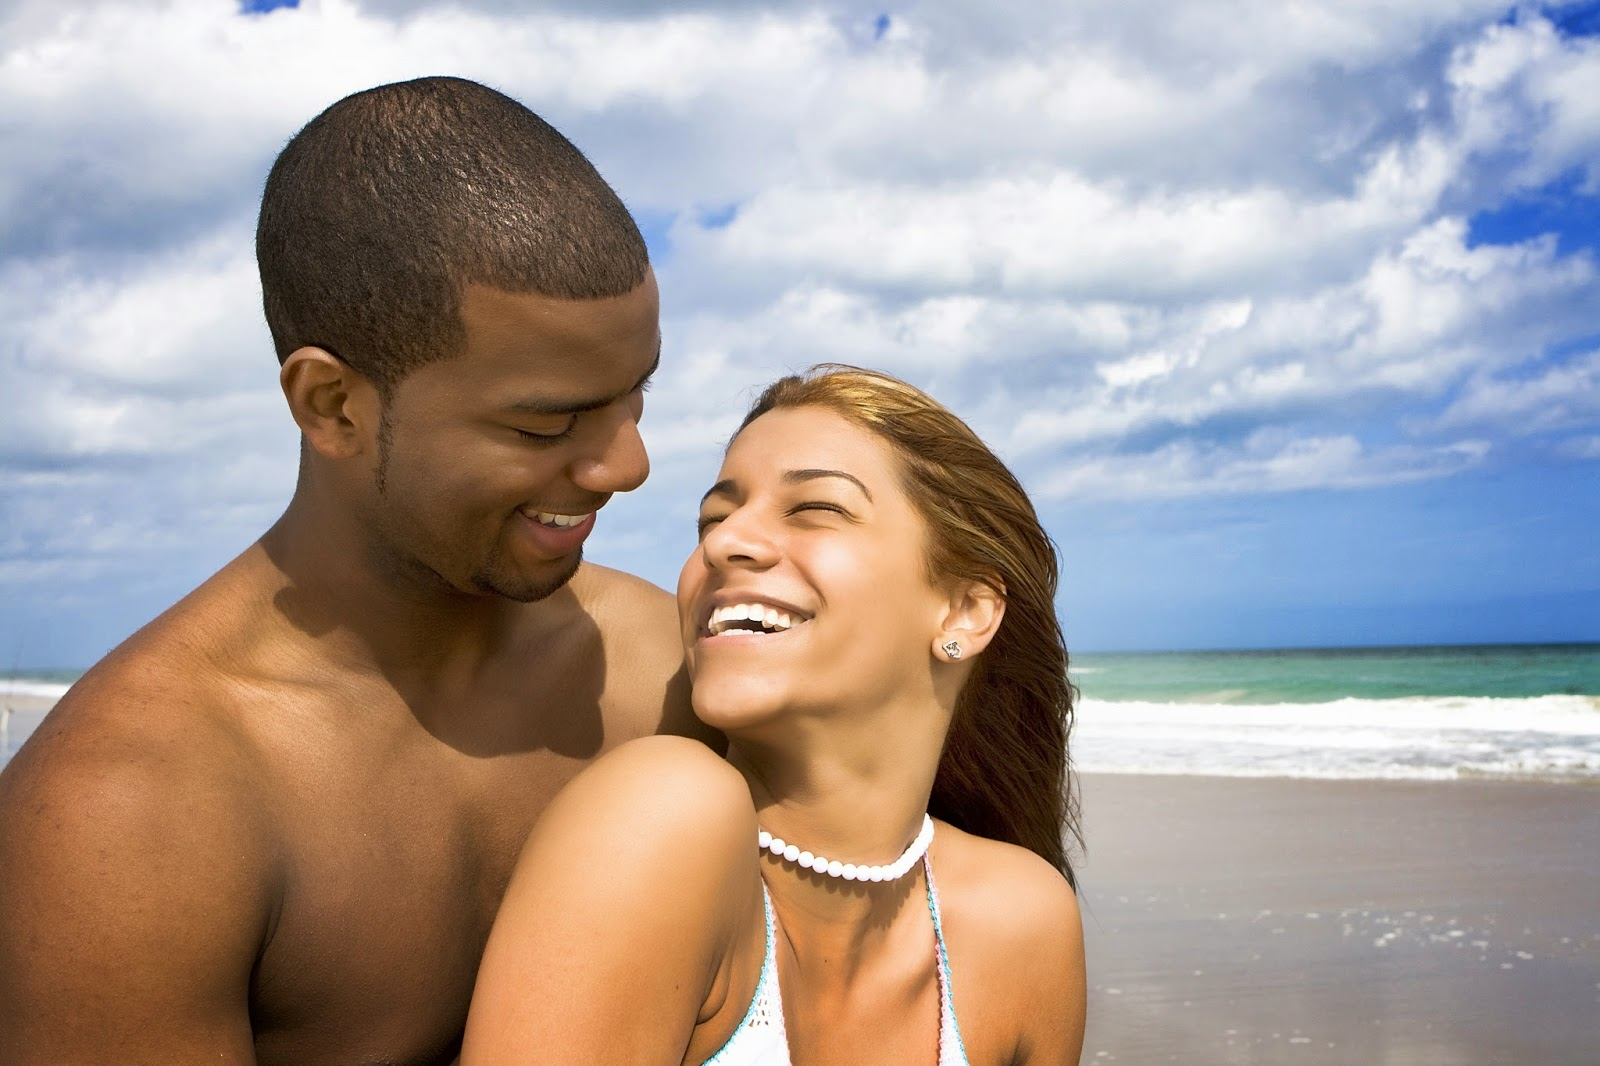 The 5 Best Online Dating Sites in South Africa